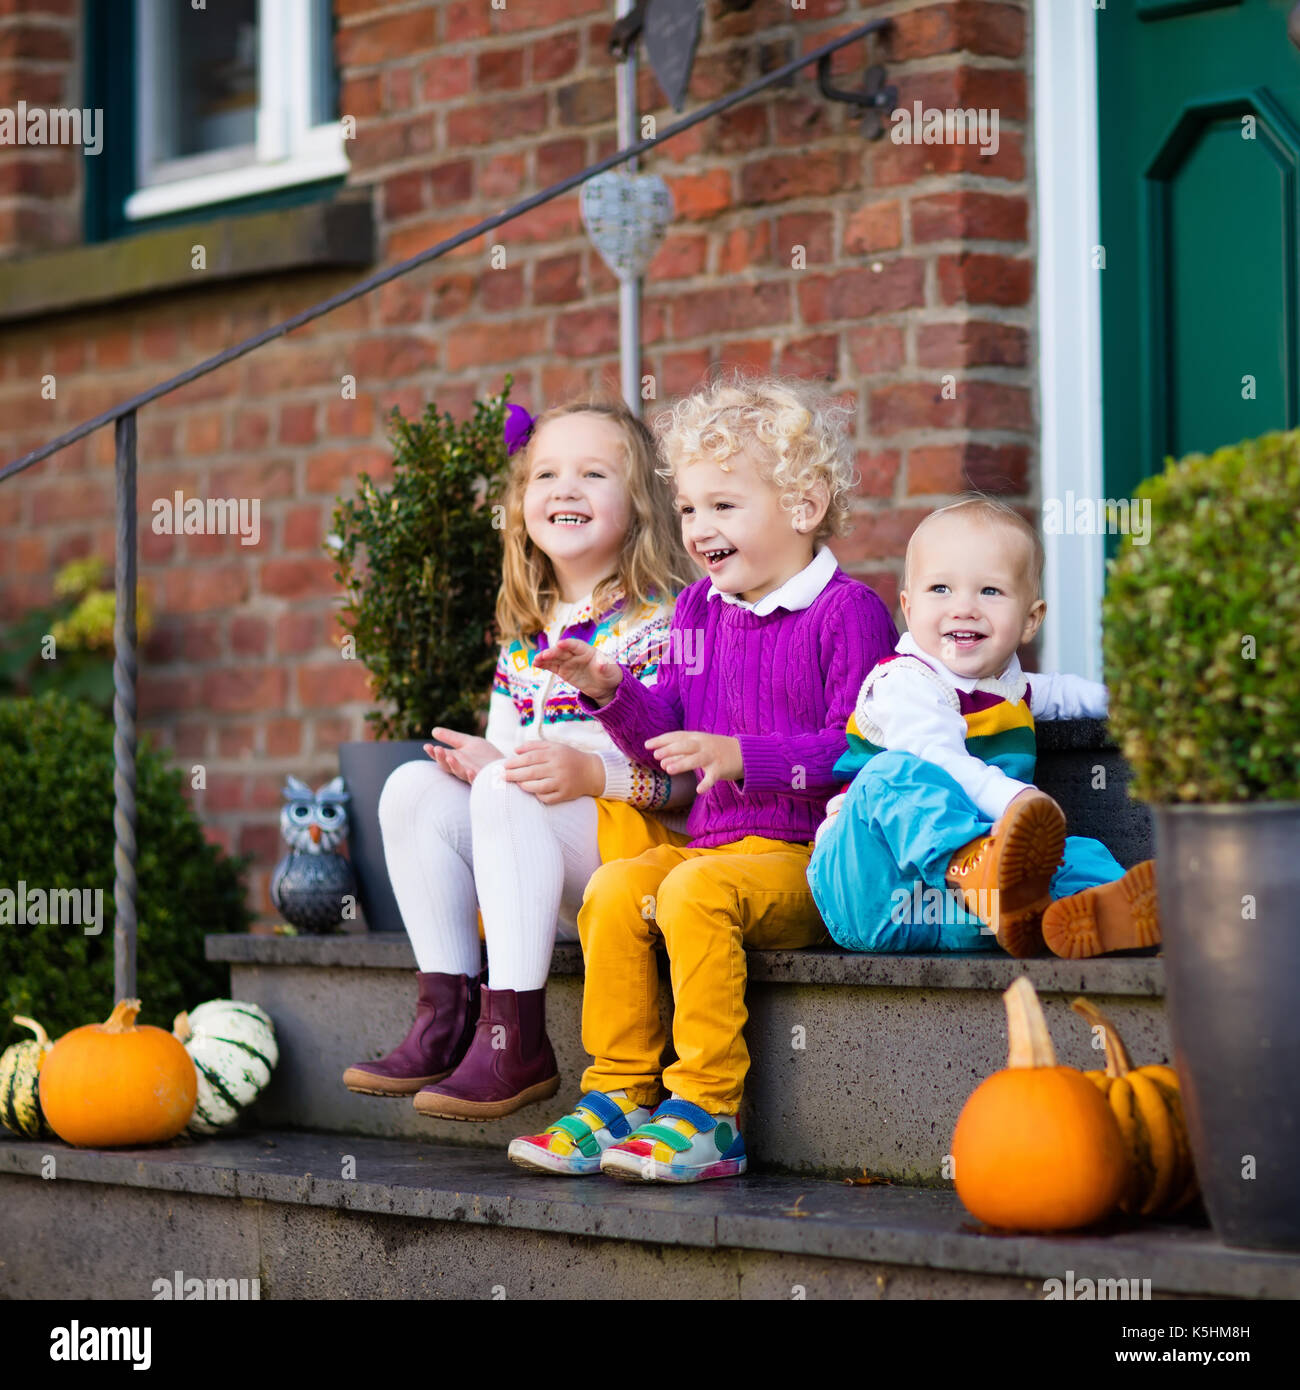 Group of little children sitting on stone stairs to the house door on warm autumn day  sc 1 st  Alamy & Group of little children sitting on stone stairs to the house door ... pezcame.com